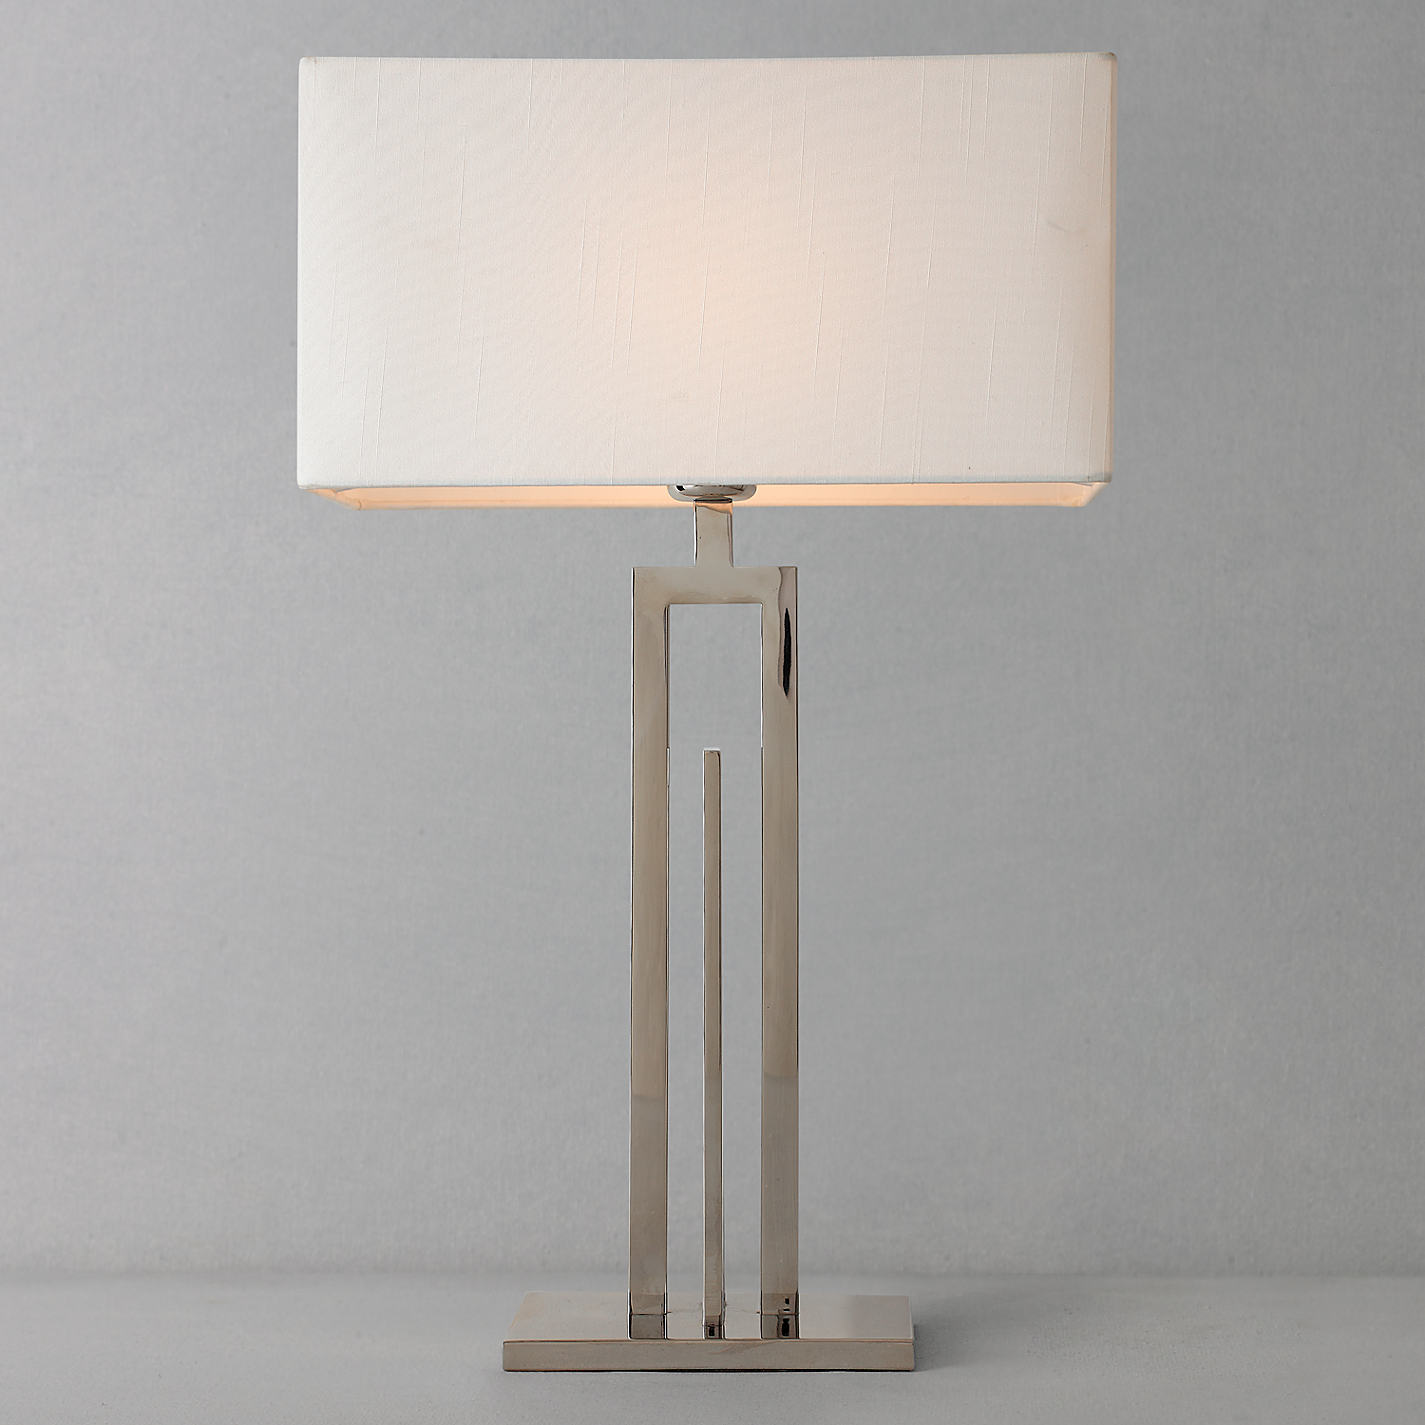 Silver lamp shades for table lamps - Silver Lamp Shades John Lewis Lamps